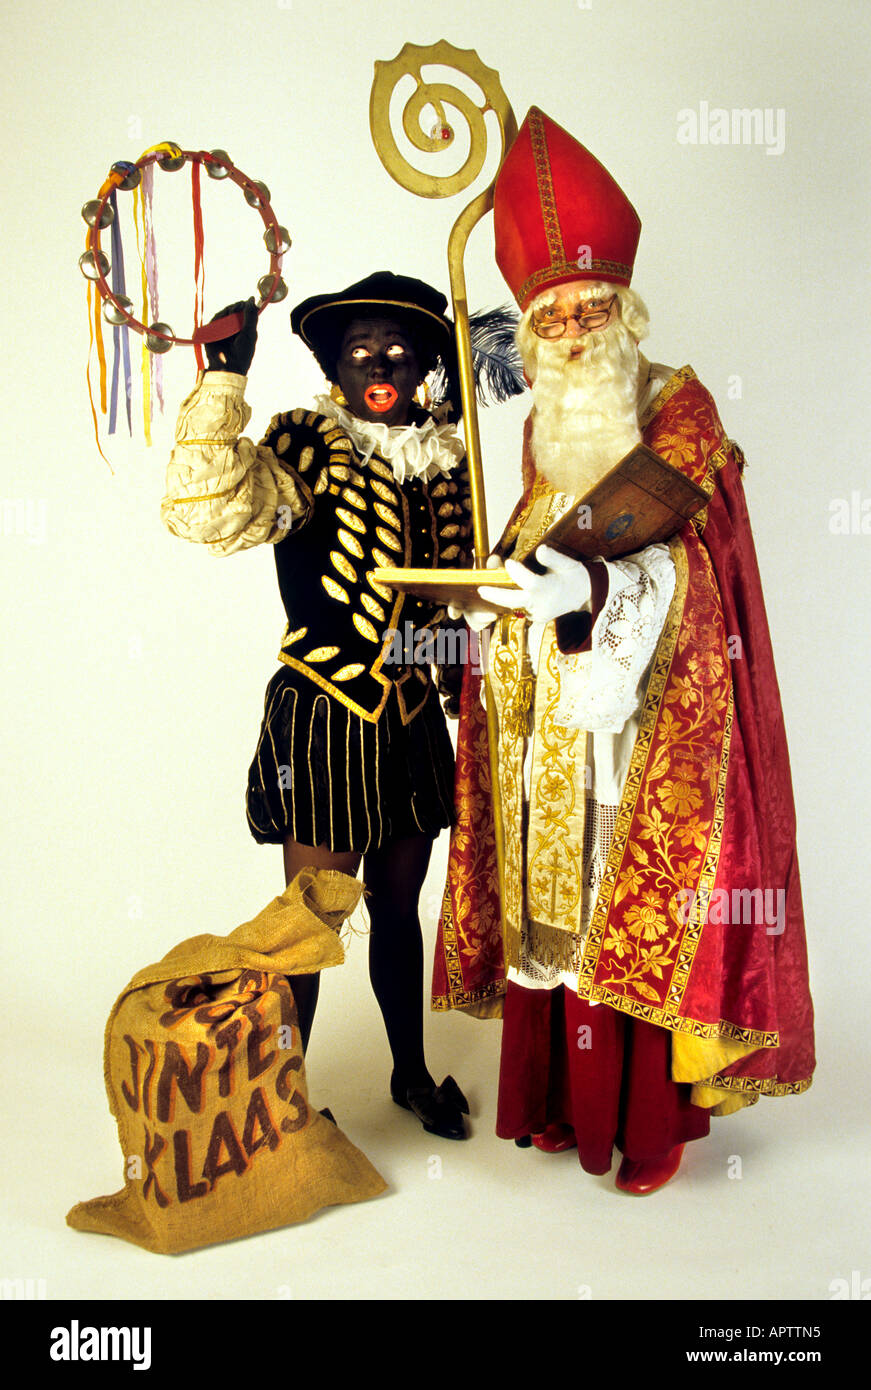 sinterklaas and zwarte piet 5 dec dutch father christmas netherlands stock photo royalty free. Black Bedroom Furniture Sets. Home Design Ideas